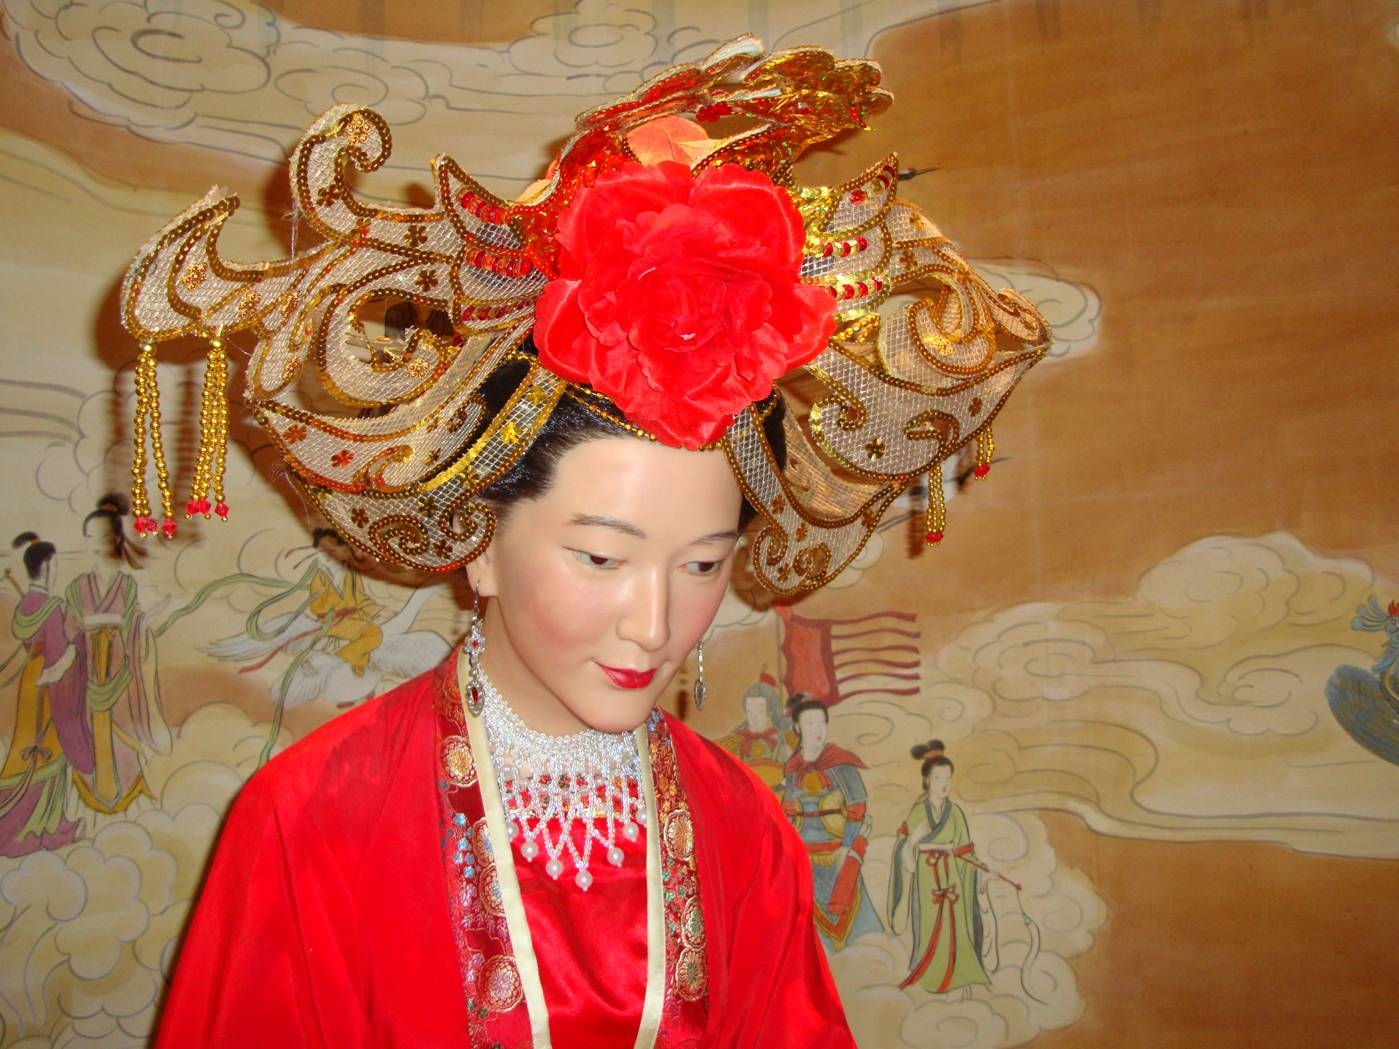 Picture:  A wax figure of a bride in the Tao Bo Yuan (Peach Museum), Yang Shan, Wuxi, China